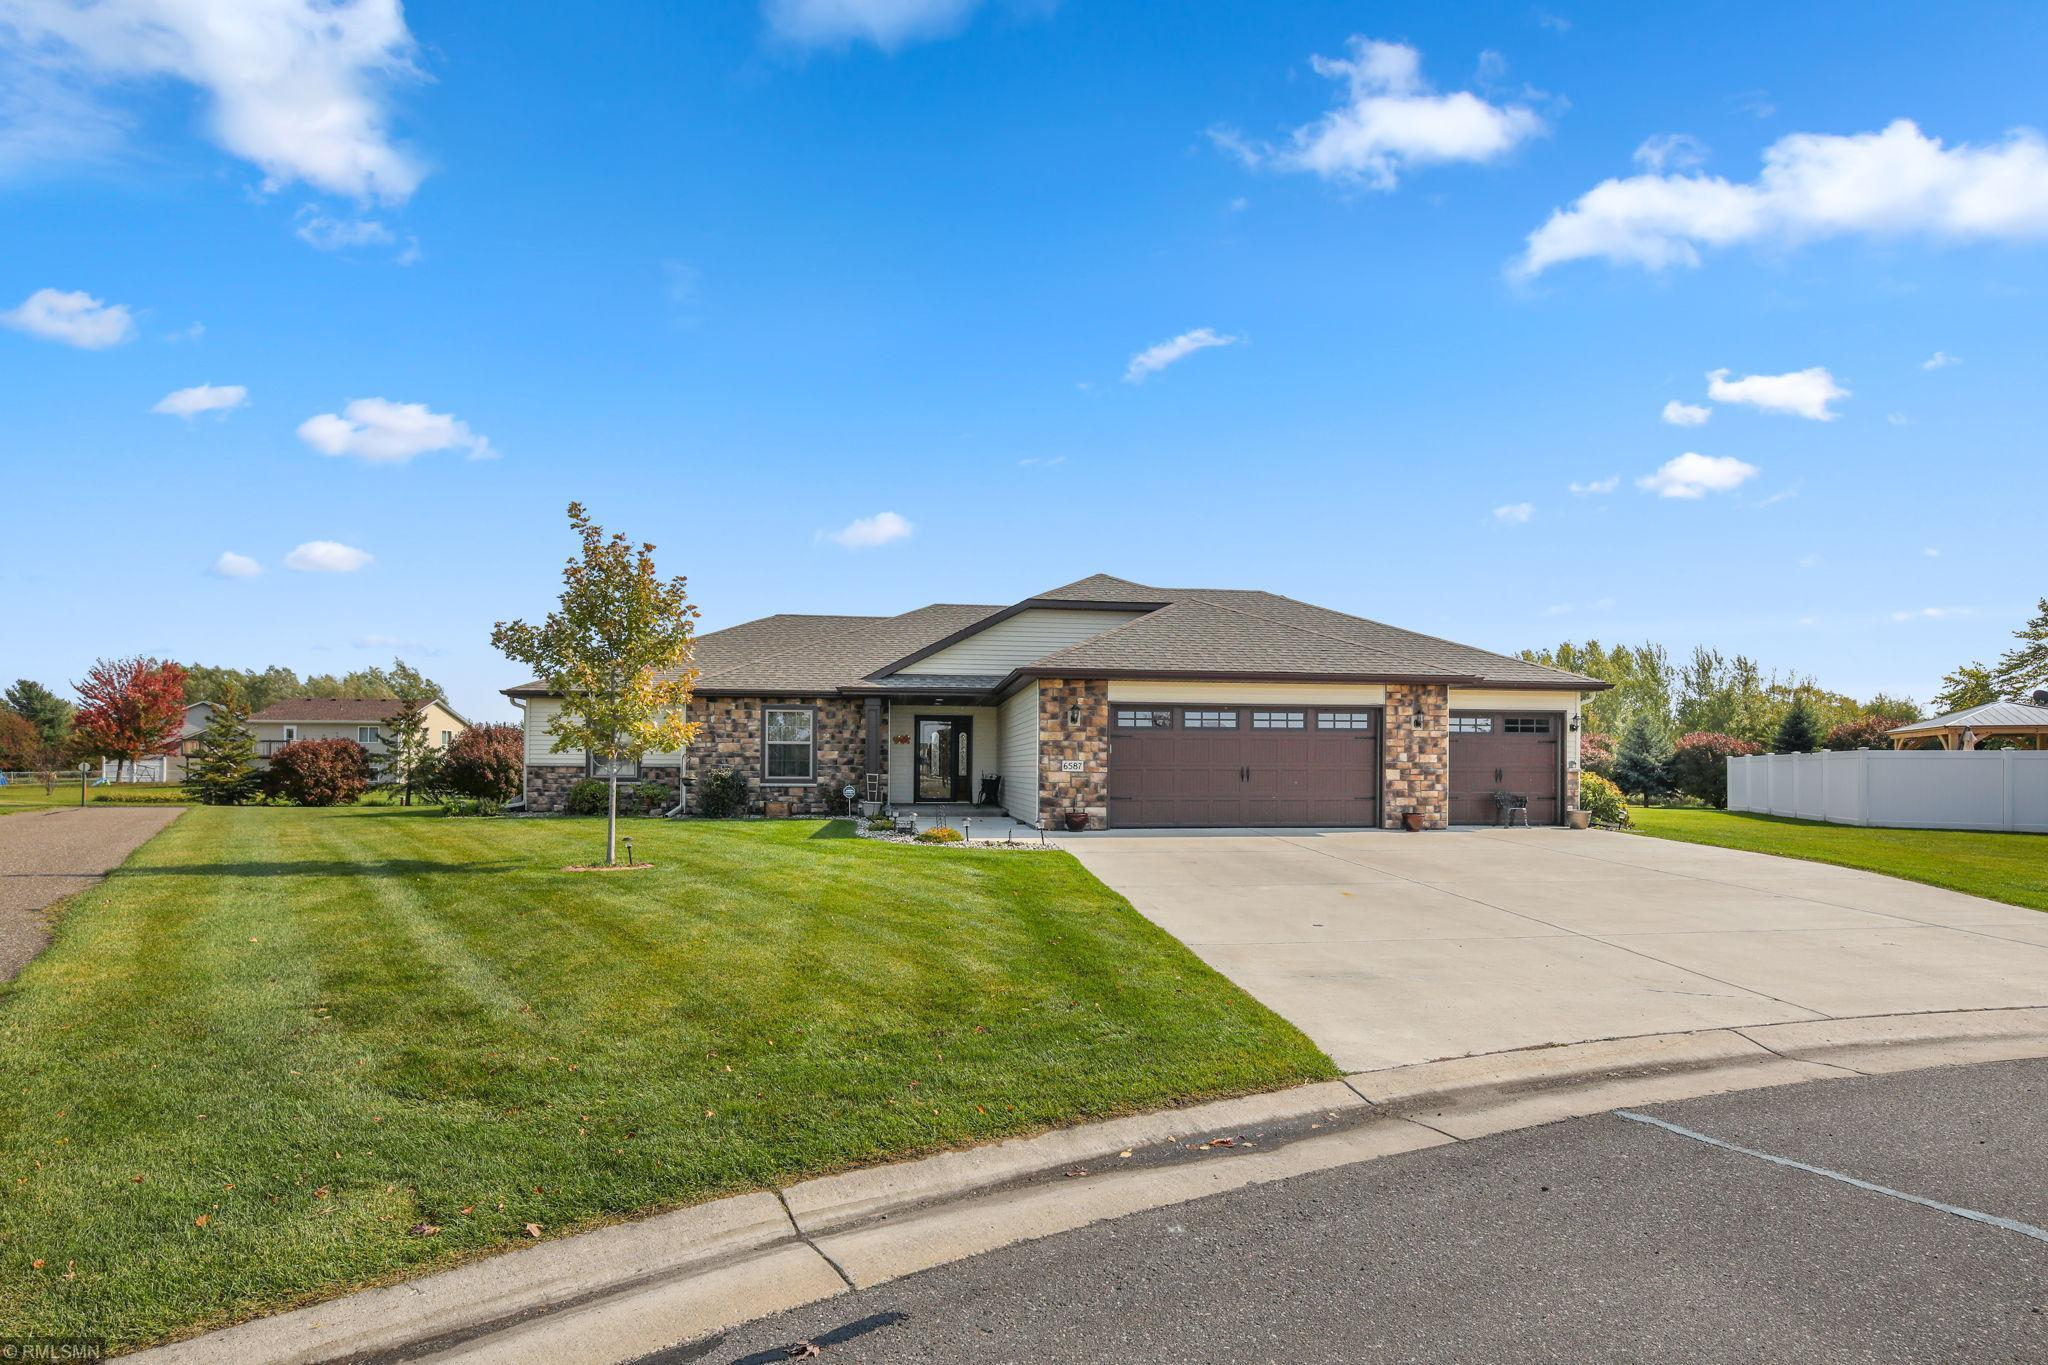 Welcome Home! This meticulously maintained, original owner, single level living home is what you have been waiting for. Upon entering this spacious home you will notice the open floor plan and beautiful gas stone fireplace. The kitchen features a walk in pantry, custom cabinets, tile backsplash, and upgraded appliances. The master suite offers a walk in closet, tray ceilings, large private master bathroom with a tile shower and heated floors. You will be sure to enjoy time spent out in the relaxing enclosed 3 season patio. The oversized heated 3 car garage provides plenty of space to store vehicles and toys. This gorgeous home has so much to offer, you have to see it for yourself, you will know this is the one!